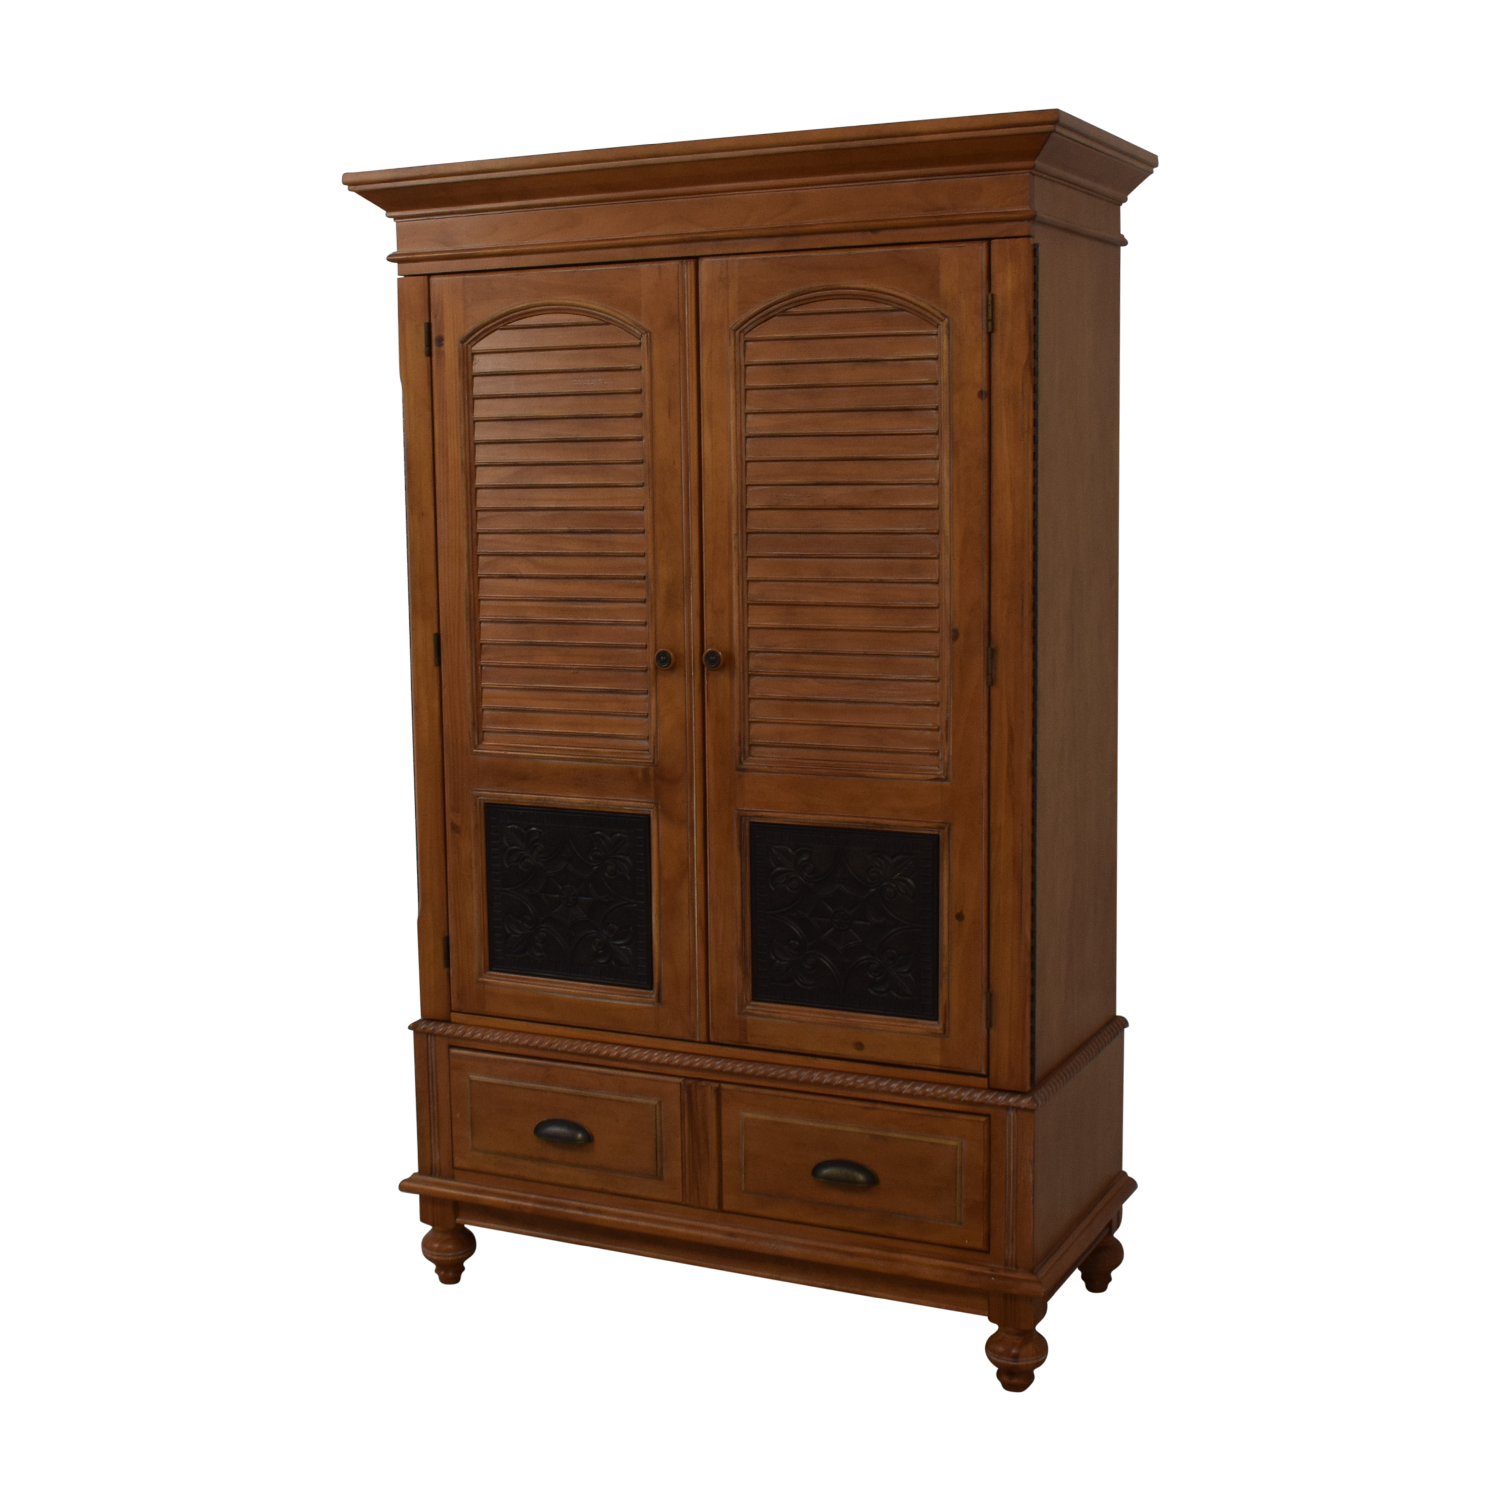 A.R.T. Furniture A.R.T. Furniture Four-Drawer Wood Wardrobe Armoire nyc